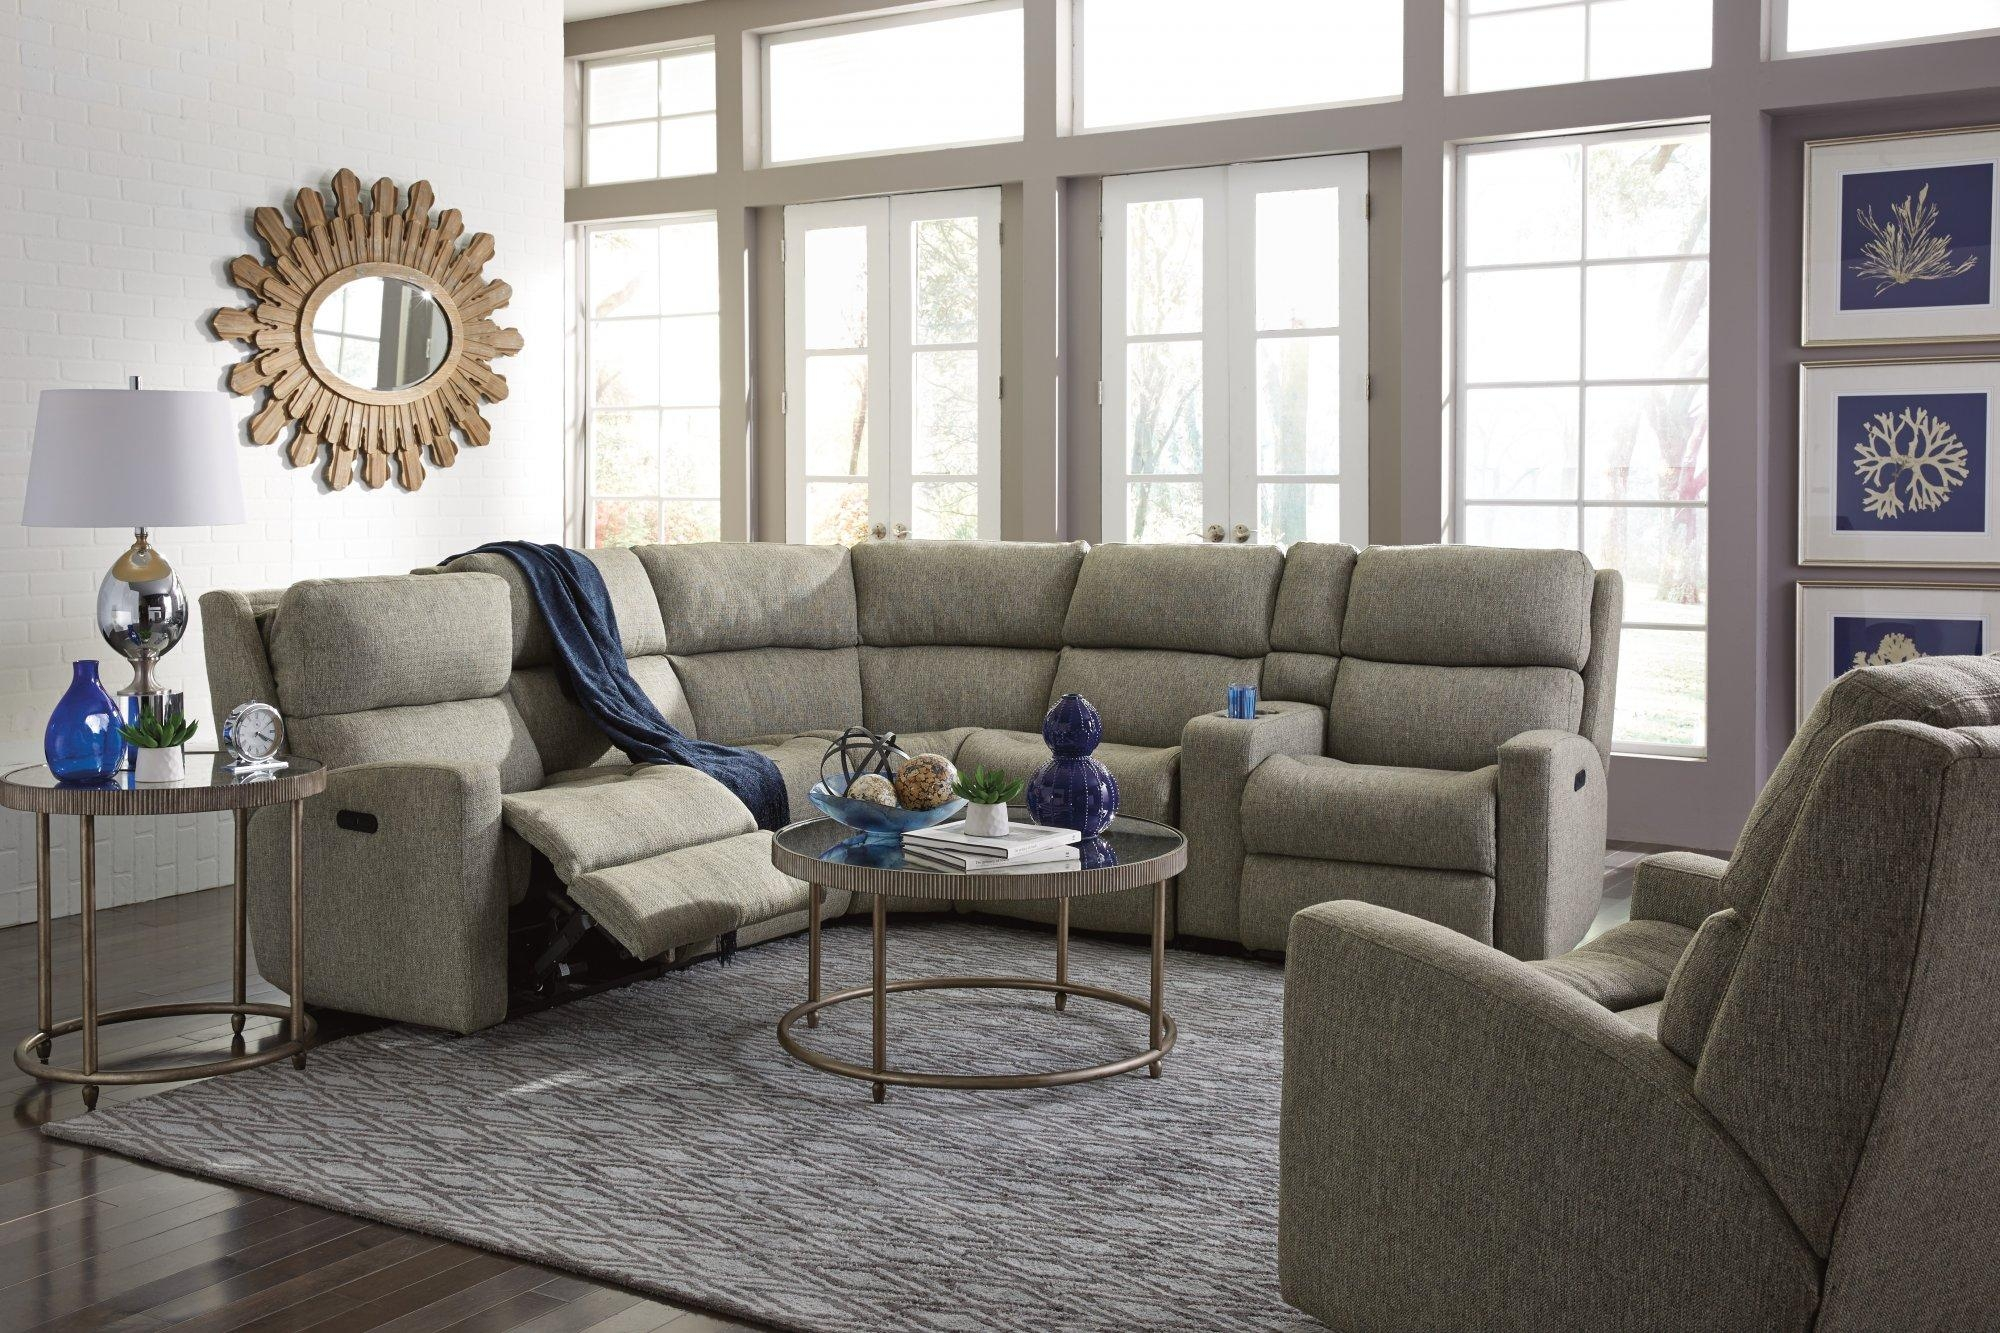 Furniture: Jedd Fabric Reclining Sectional Sofa | Sectional Within Jedd Fabric Reclining Sectional Sofa (View 5 of 20)